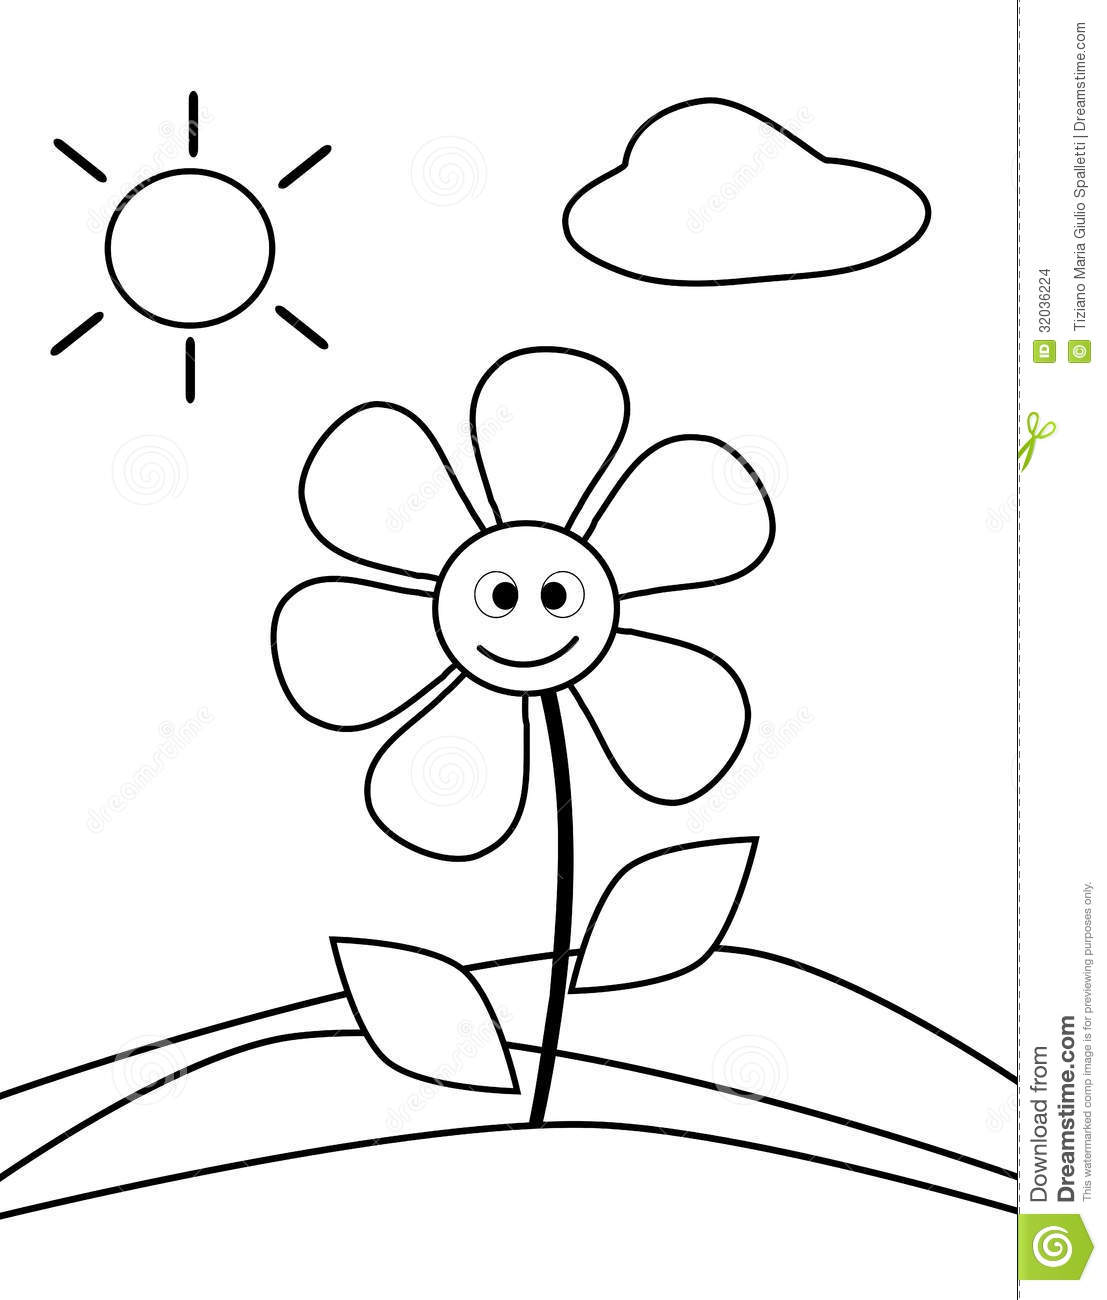 Coloring flower stock photo. Illustration of closeup ...